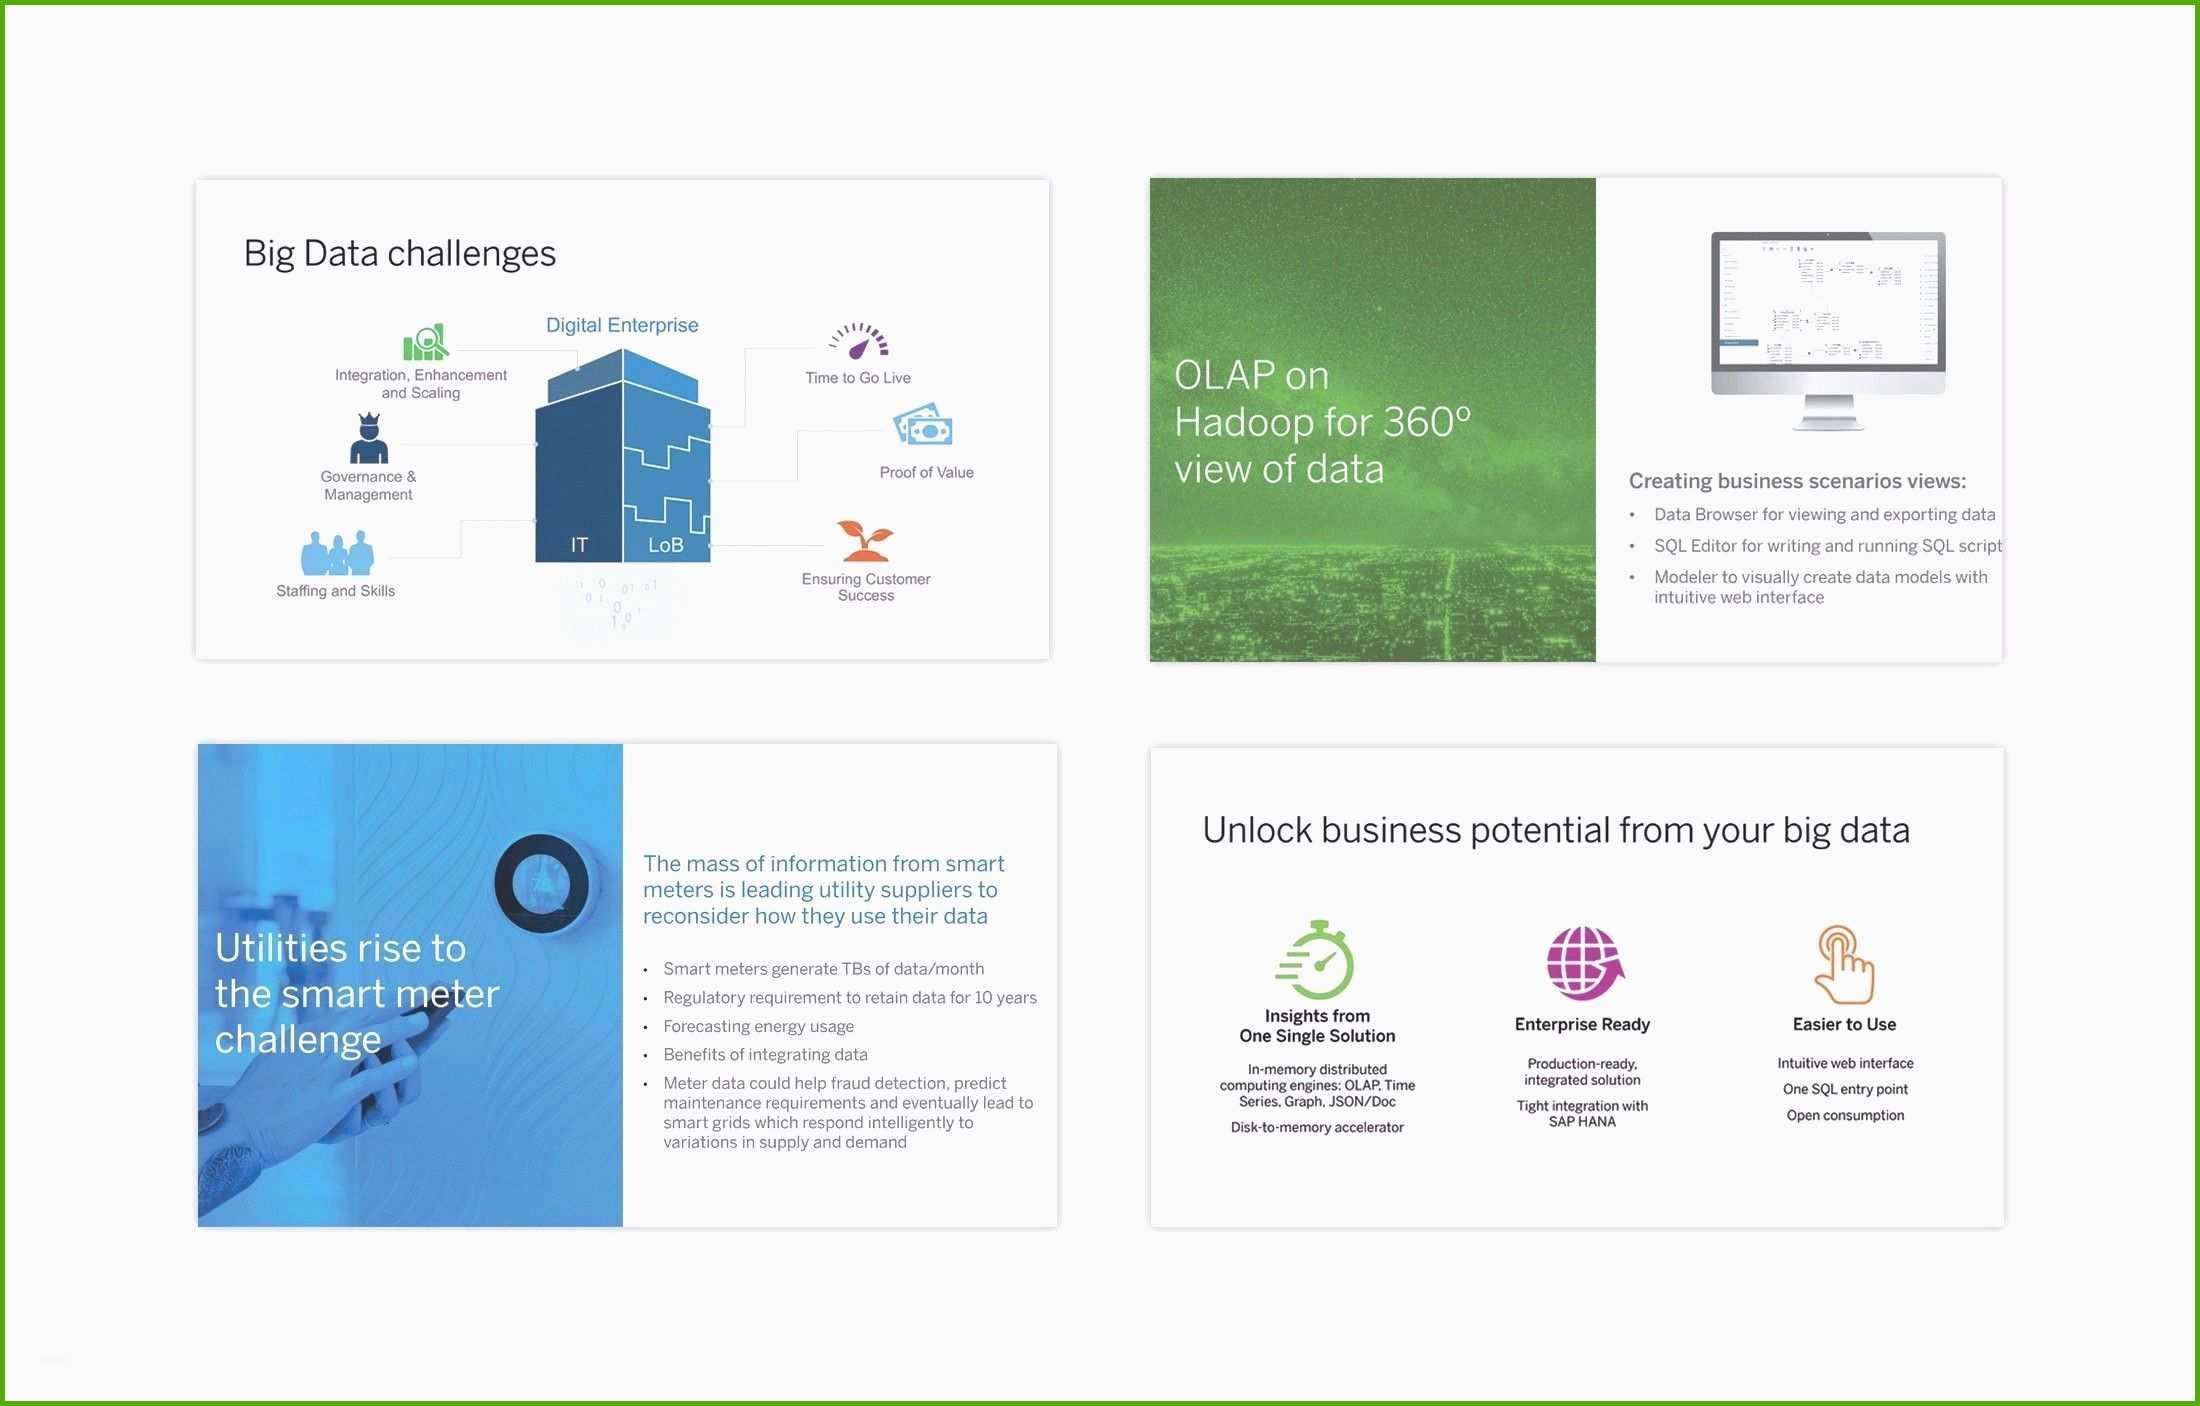 ¢‹†…¡ Powerpoint Templates for Scientific Presentations Ppt 0d Clean top line Templates